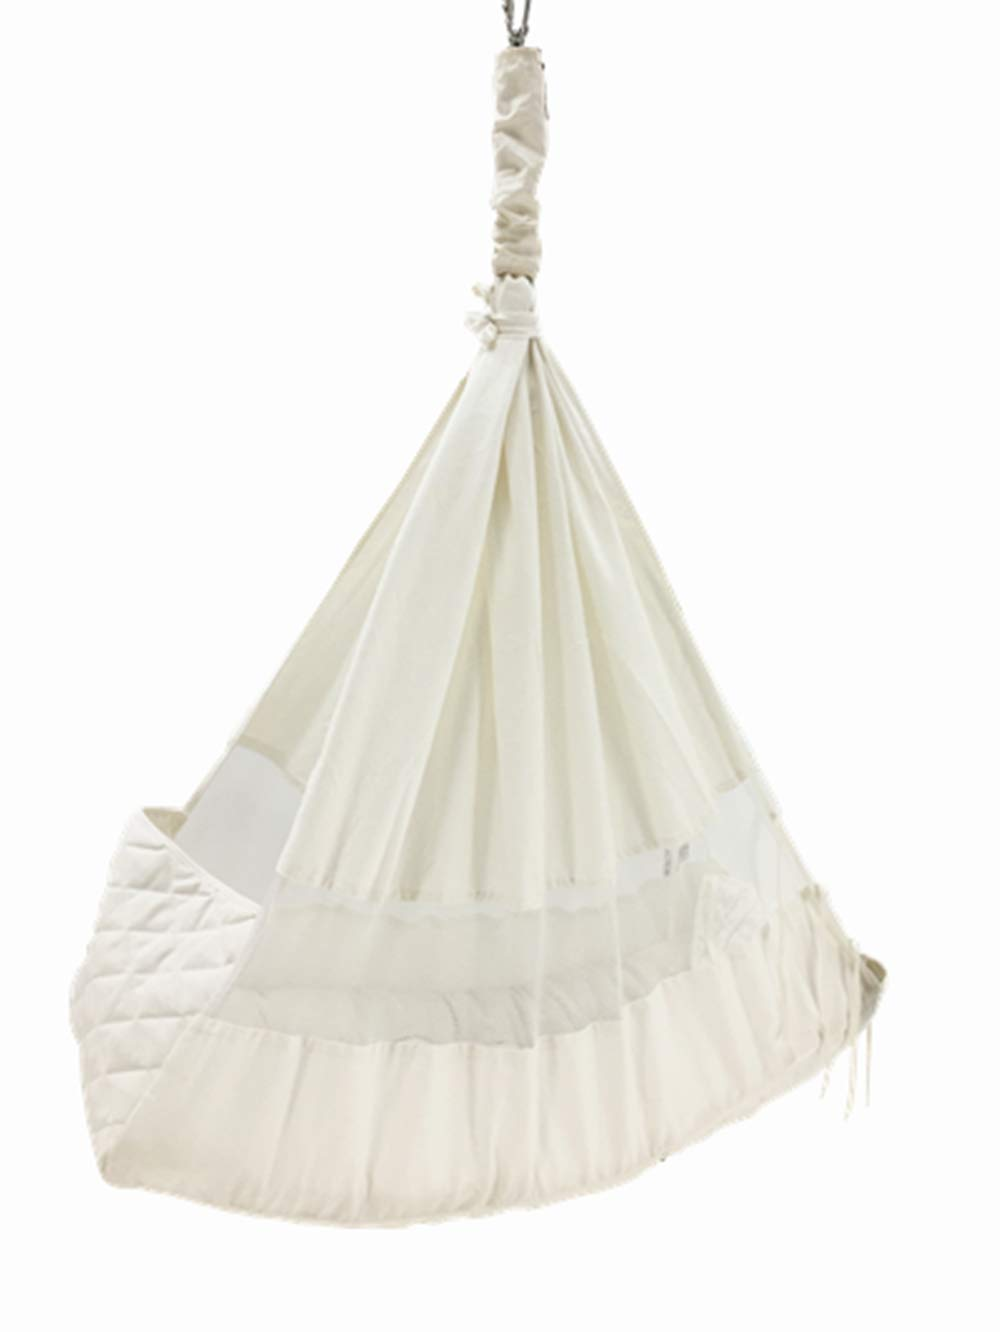 White Baby Hammock Baby cot Baby Swing Without Metal Frame